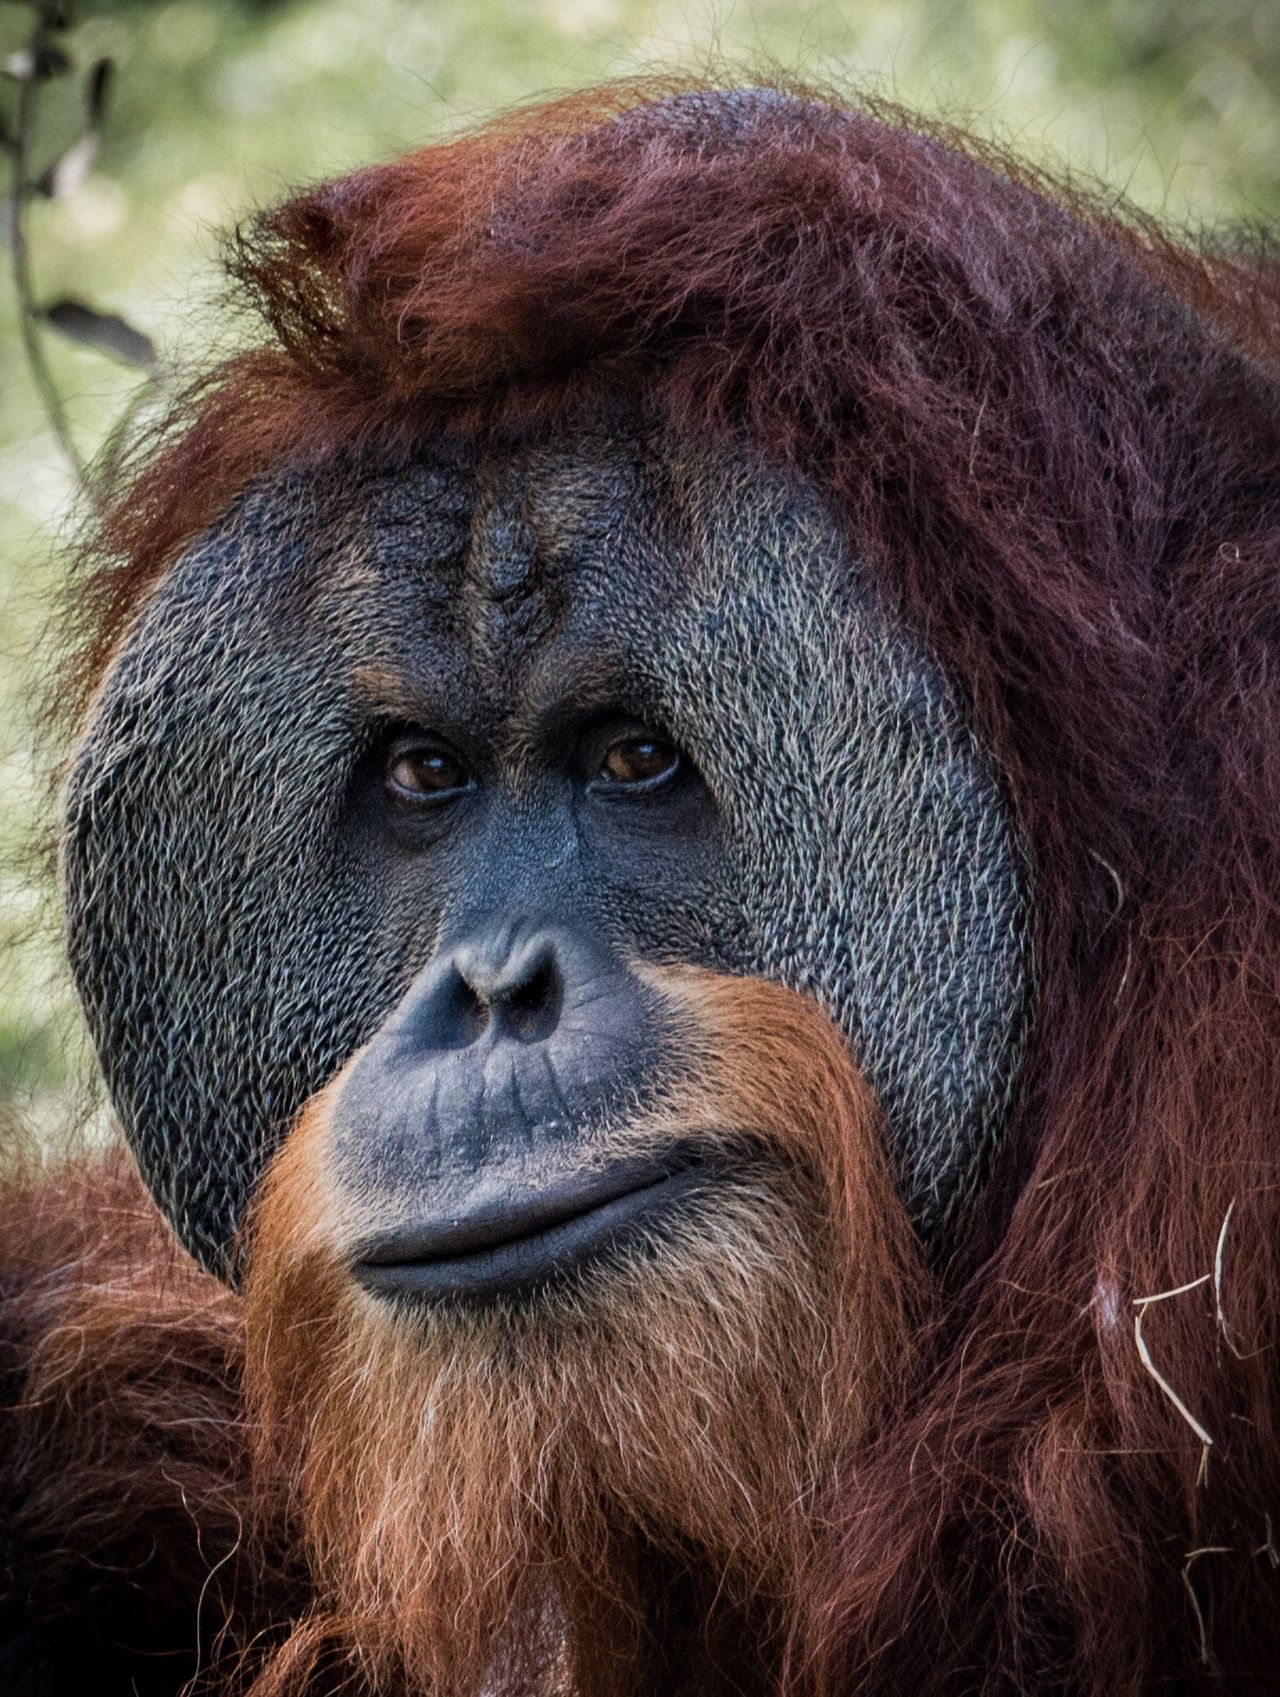 Up close and personal Orangutan Mammal Ape Primate Animal Themes Monkey Animal Hair Animals In The Wild Animal Wildlife Close-up No People One Animal Portrait Brown Nature Outdoors Gorilla Animal Body Part Day Portrait Photography Portraits Zoo Animals  Zoology Zoo Finding New Frontiers